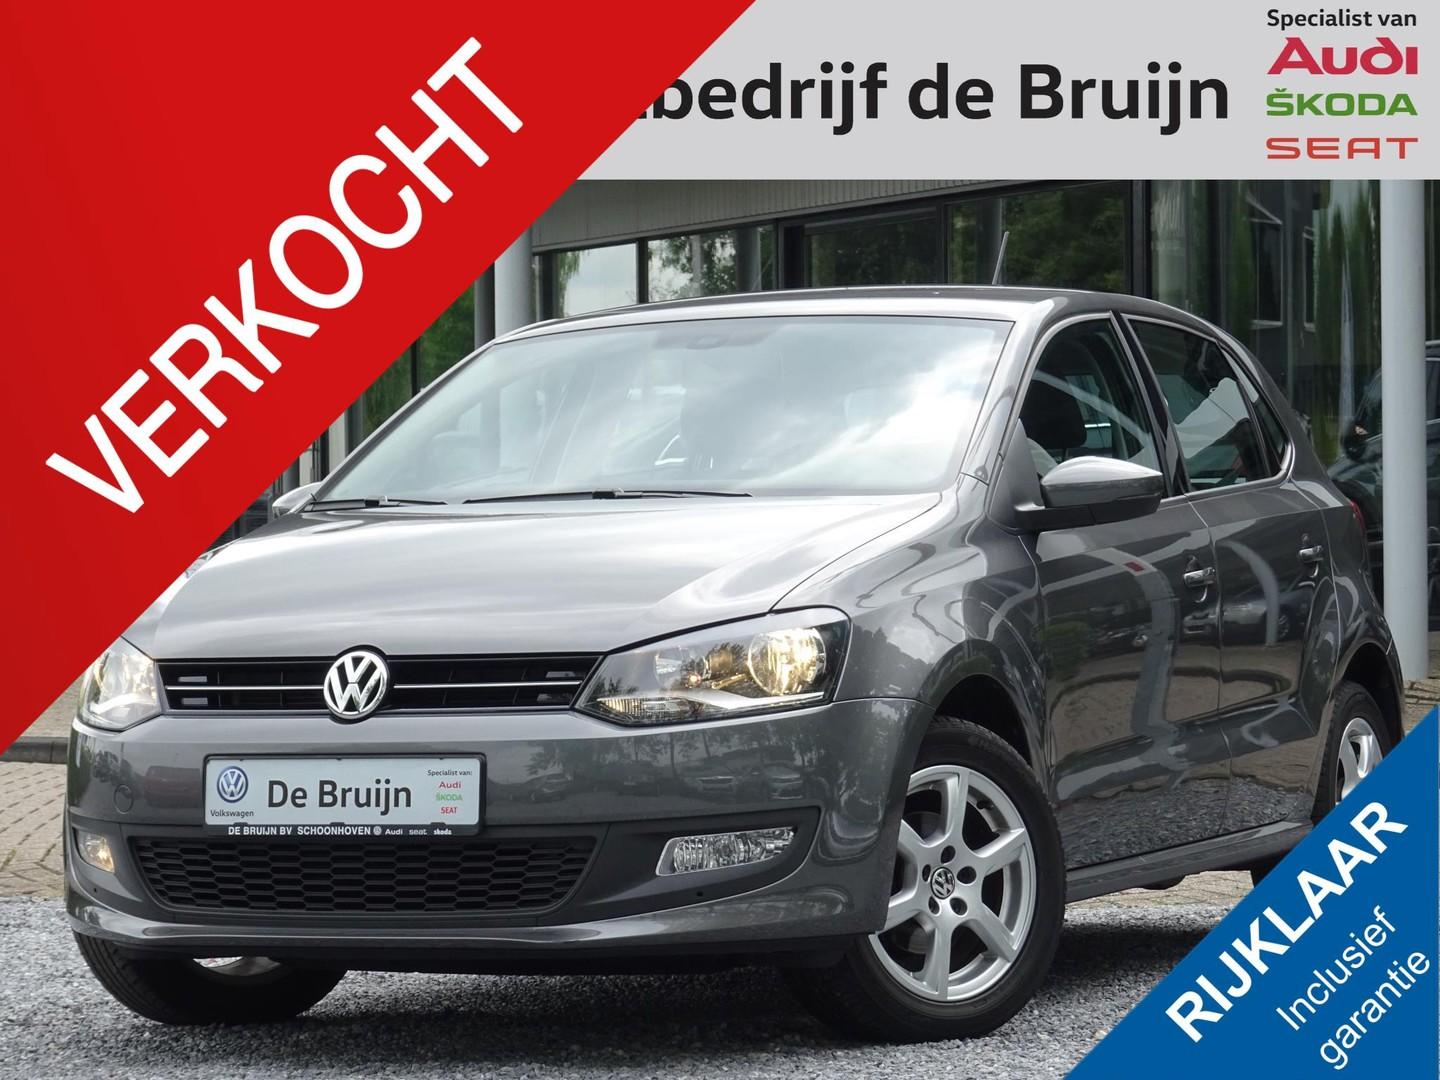 Volkswagen Polo Edition 1.2 tsi 90pk dsg 5d (trekhaak,airco,cruise,lm,pdc)